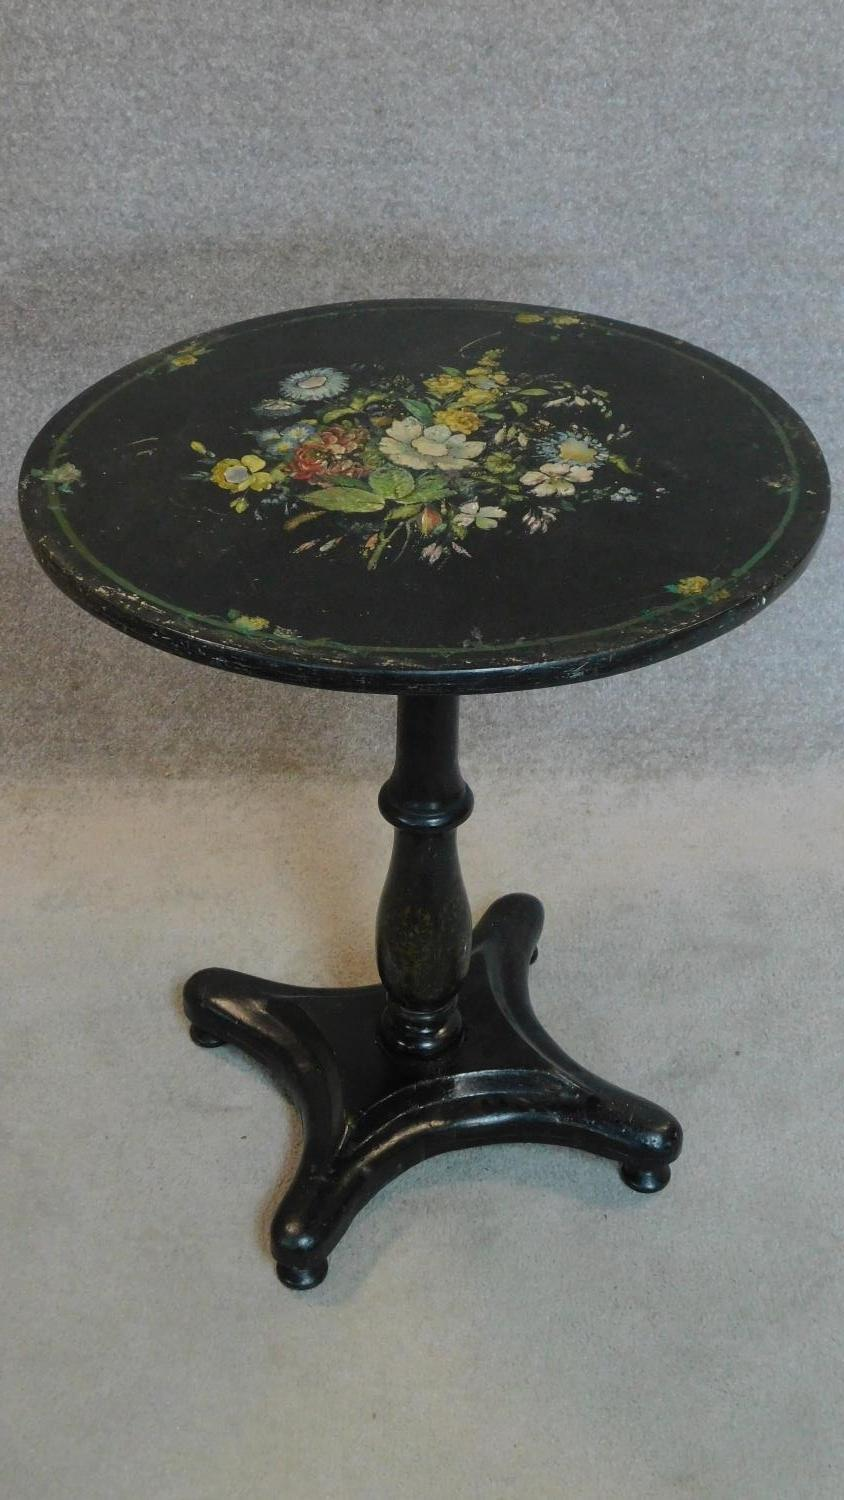 Lot 13 - A Victorian ebonised painted and mother of pearl inlaid circular occasional table. 70x61x61cm